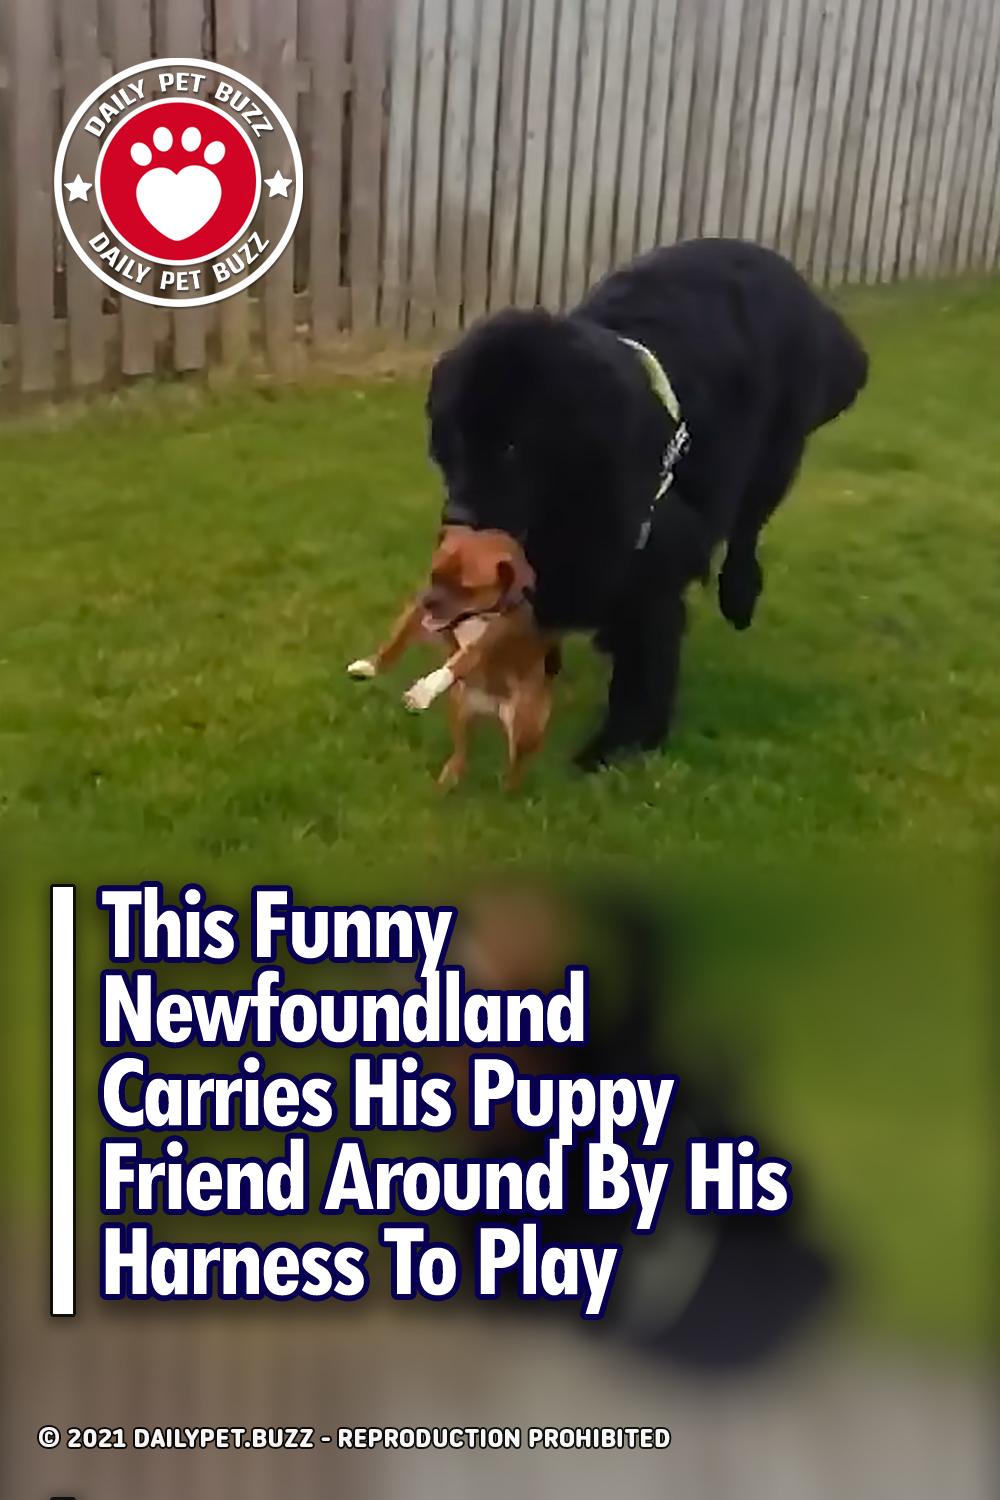 This Funny Newfoundland Carries His Puppy Friend Around By His Harness To Play